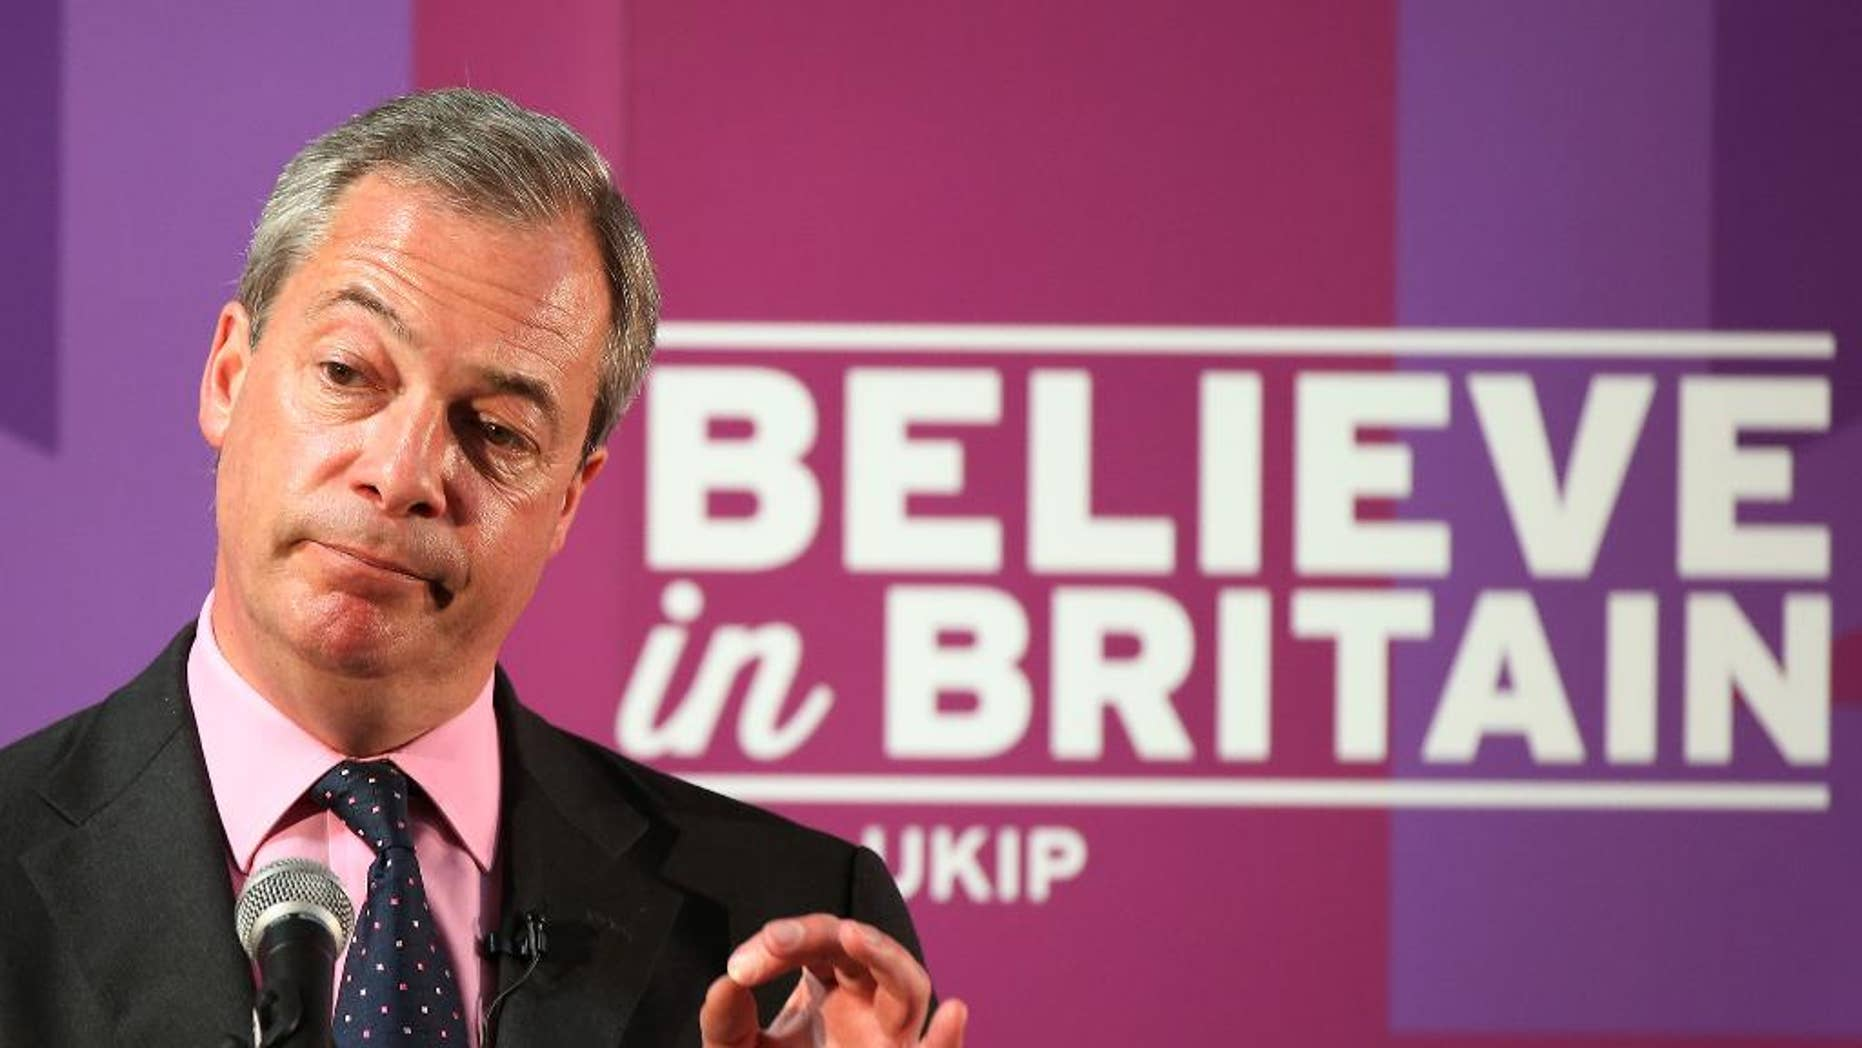 FILE - In this Tuesday, April 28, 2015 file photo, Nigel Farage leader of Britain's United Kingdom Independence Party delivers a speech in Hartlepool, England. The UK Independence Party says the resignation of Nigel Farage as party leader has been rejected and he remains in the post. The announcement Monday, May 11, 2015 came three days after Farage said he was stepping down following his failure to win a seat in Parliament.  (AP Photo/Scott Heppell, File)